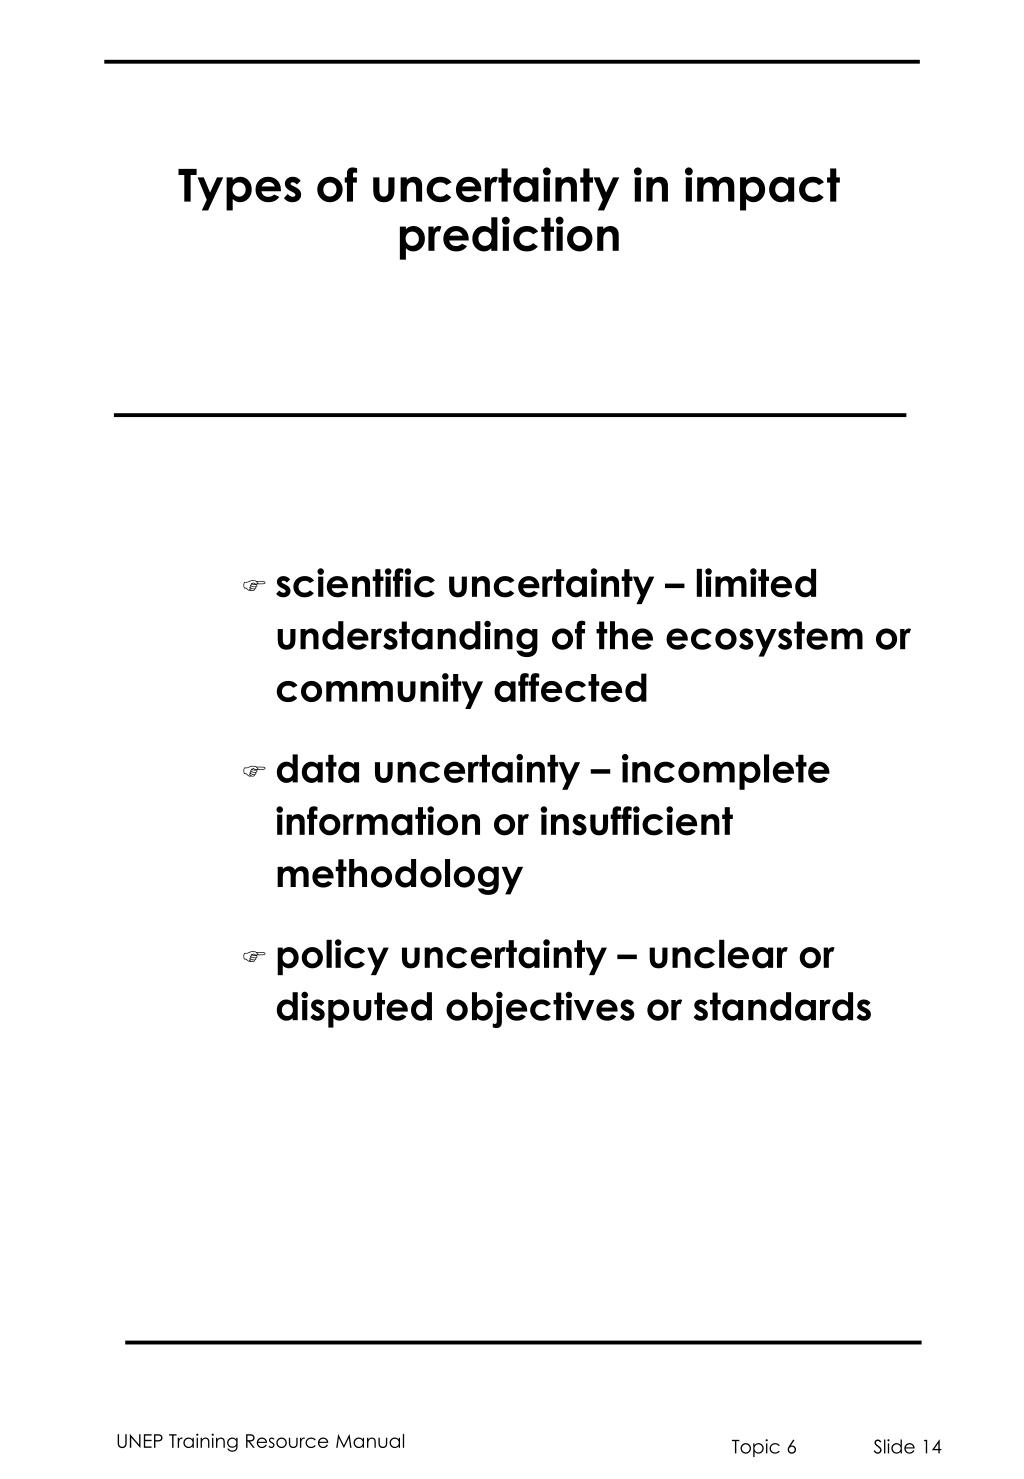 Types of uncertainty in impact prediction